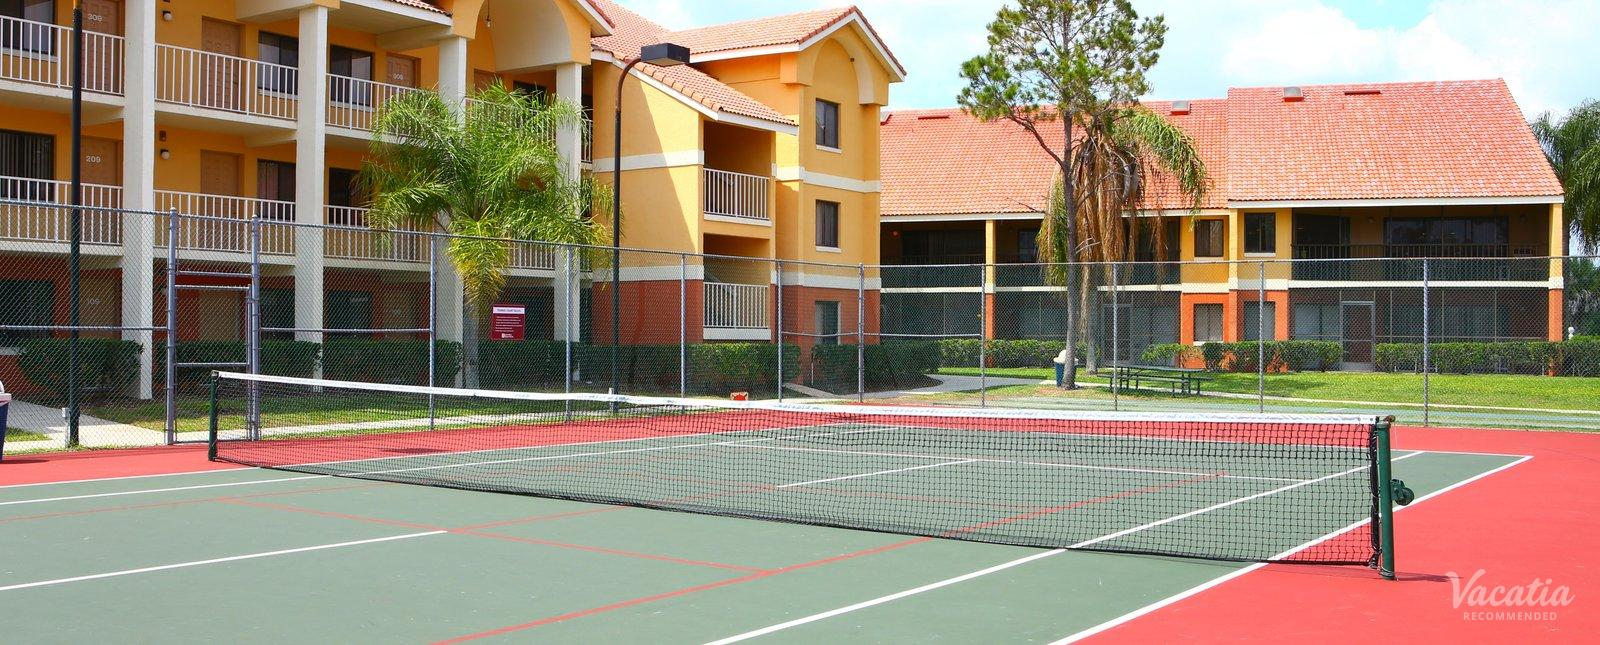 Westgate Vacation Villas Orlando  Tennis Court